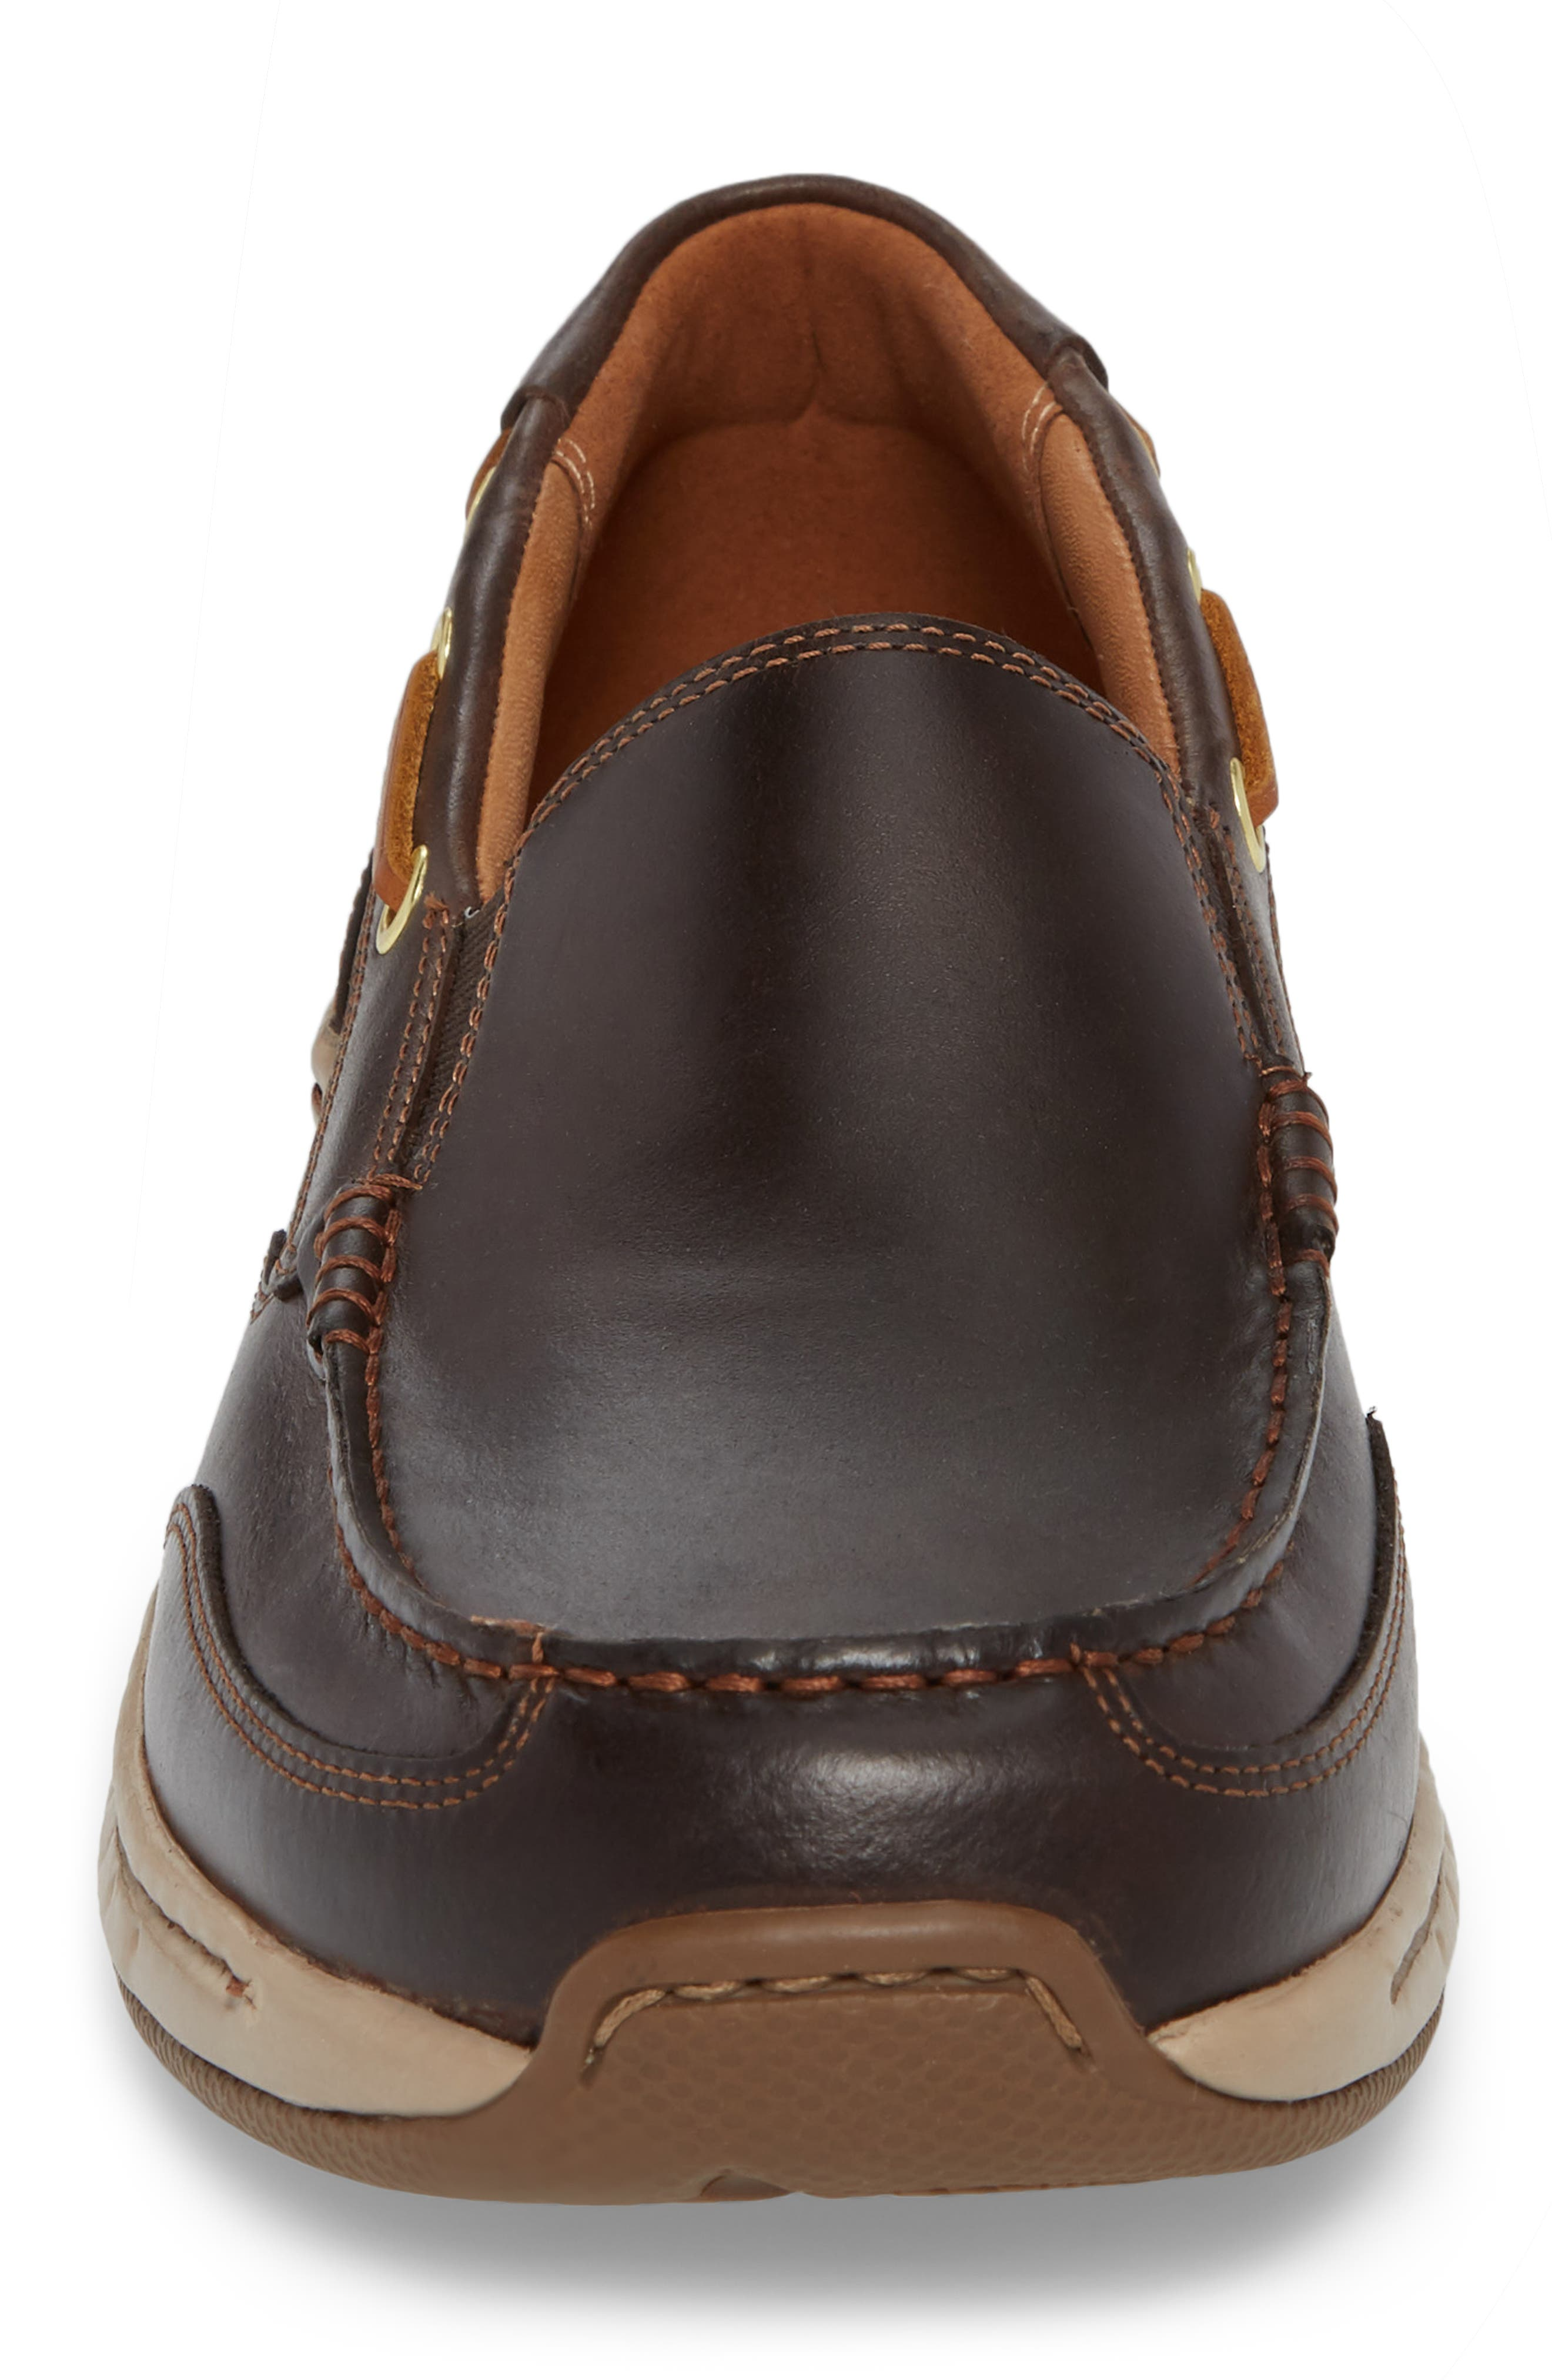 DUNHAM, Waterford Water Resistant Slip-On, Alternate thumbnail 4, color, TAN LEATHER